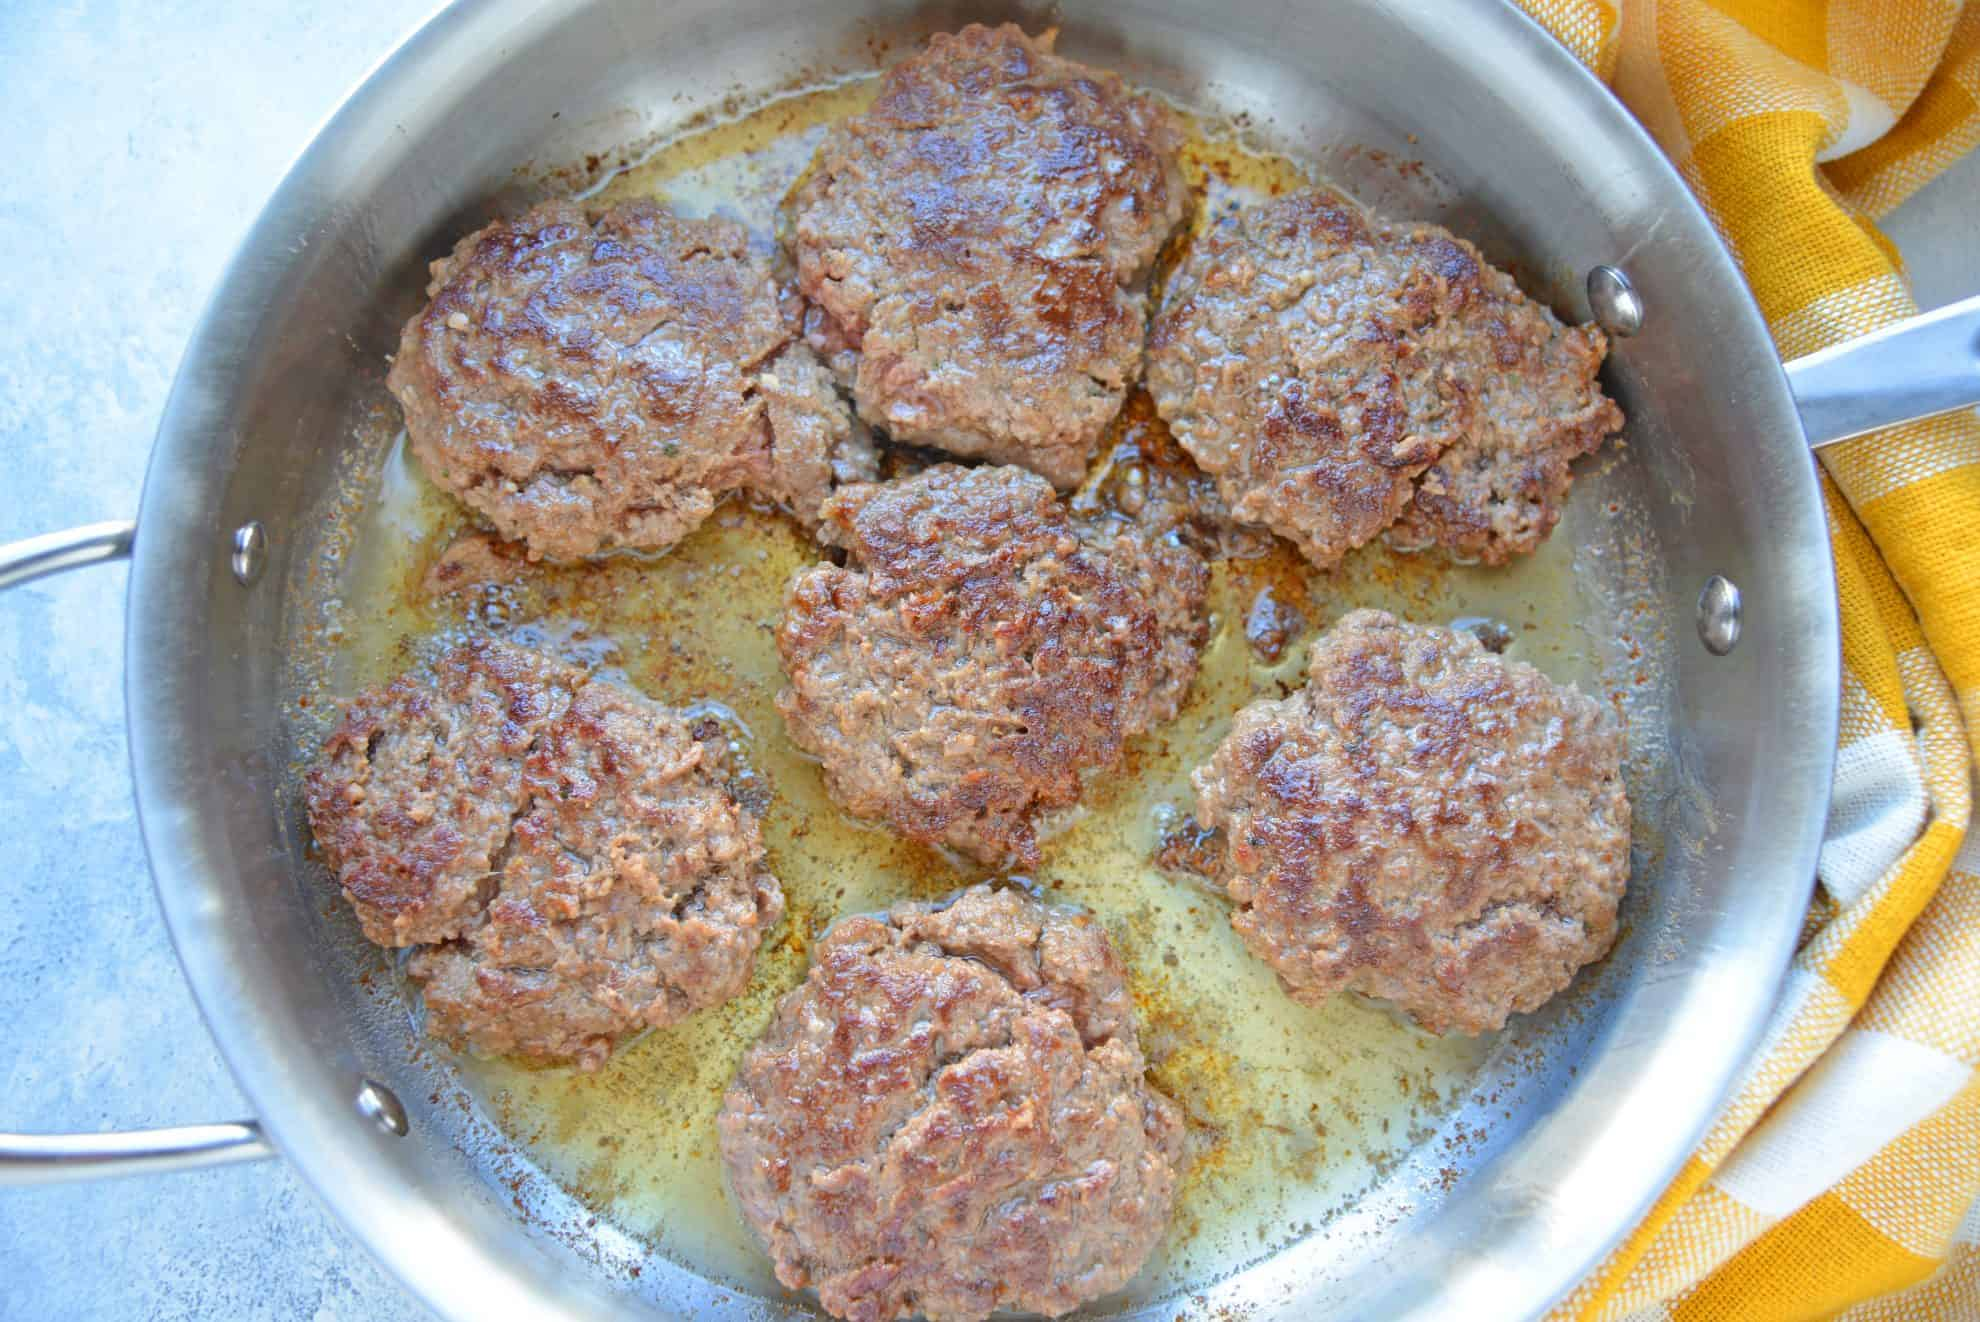 Salisbury steak patties cooking